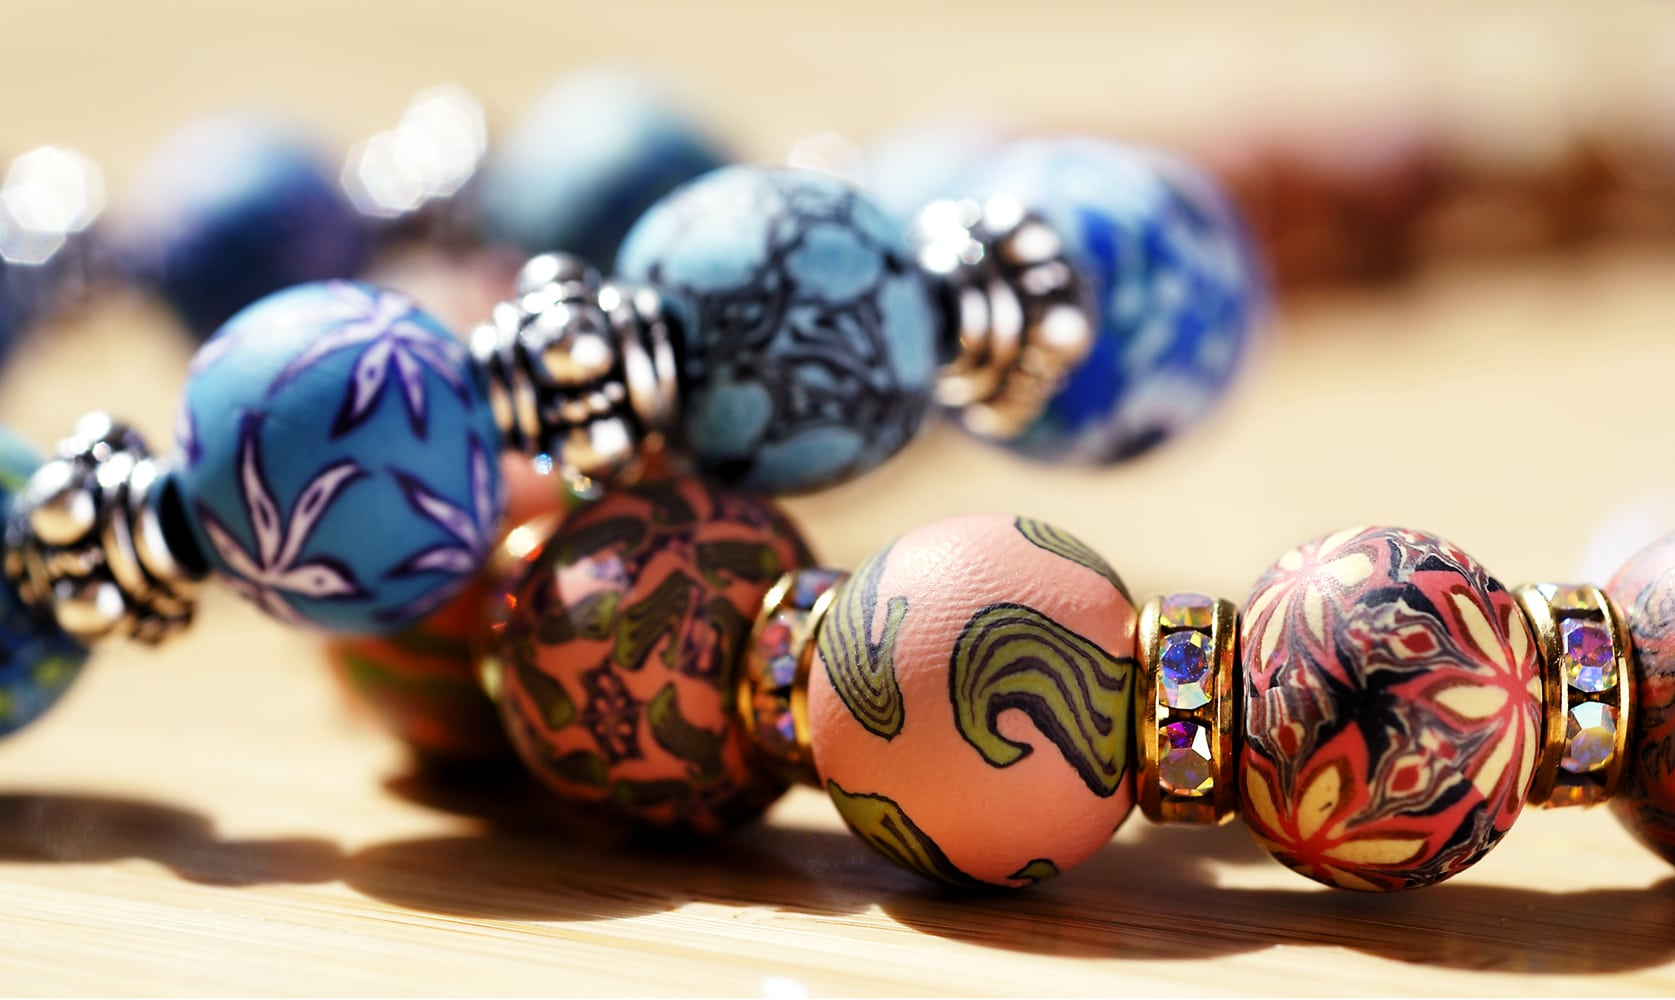 Hand made beads with intricate designs on two bracelets. One orange beads and one with blue beads piled on top